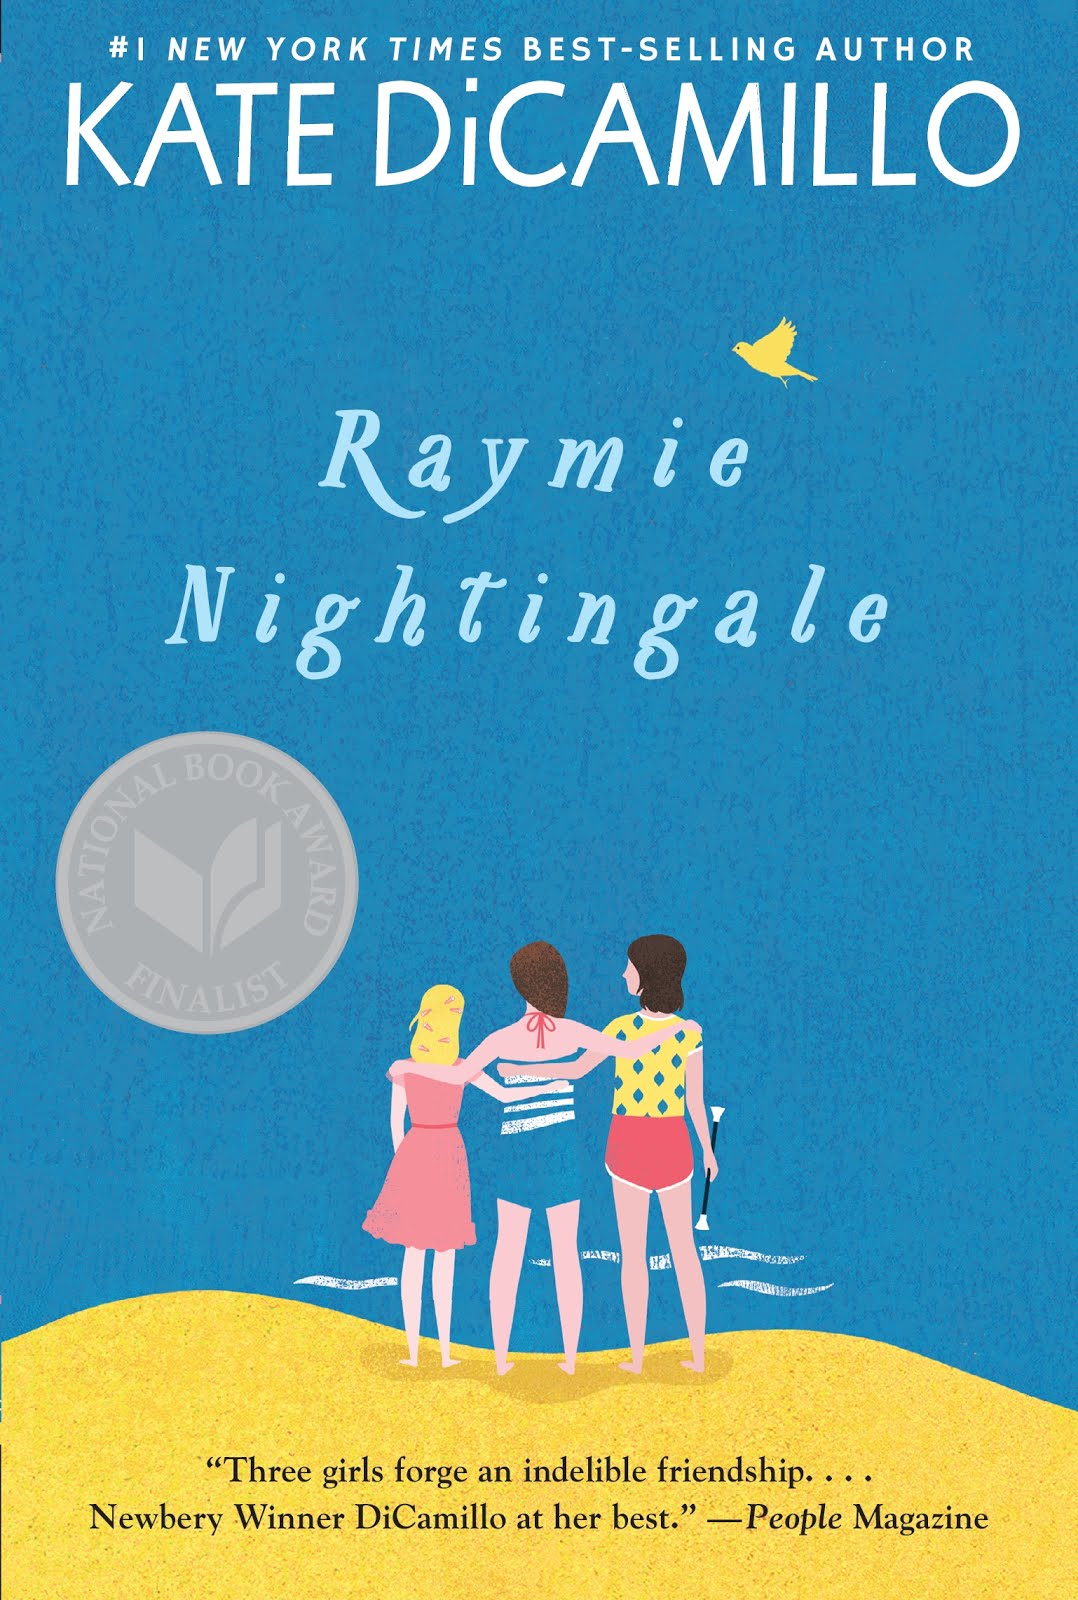 Kate DiCamillo – Raymie Nightingale Genre: Author: